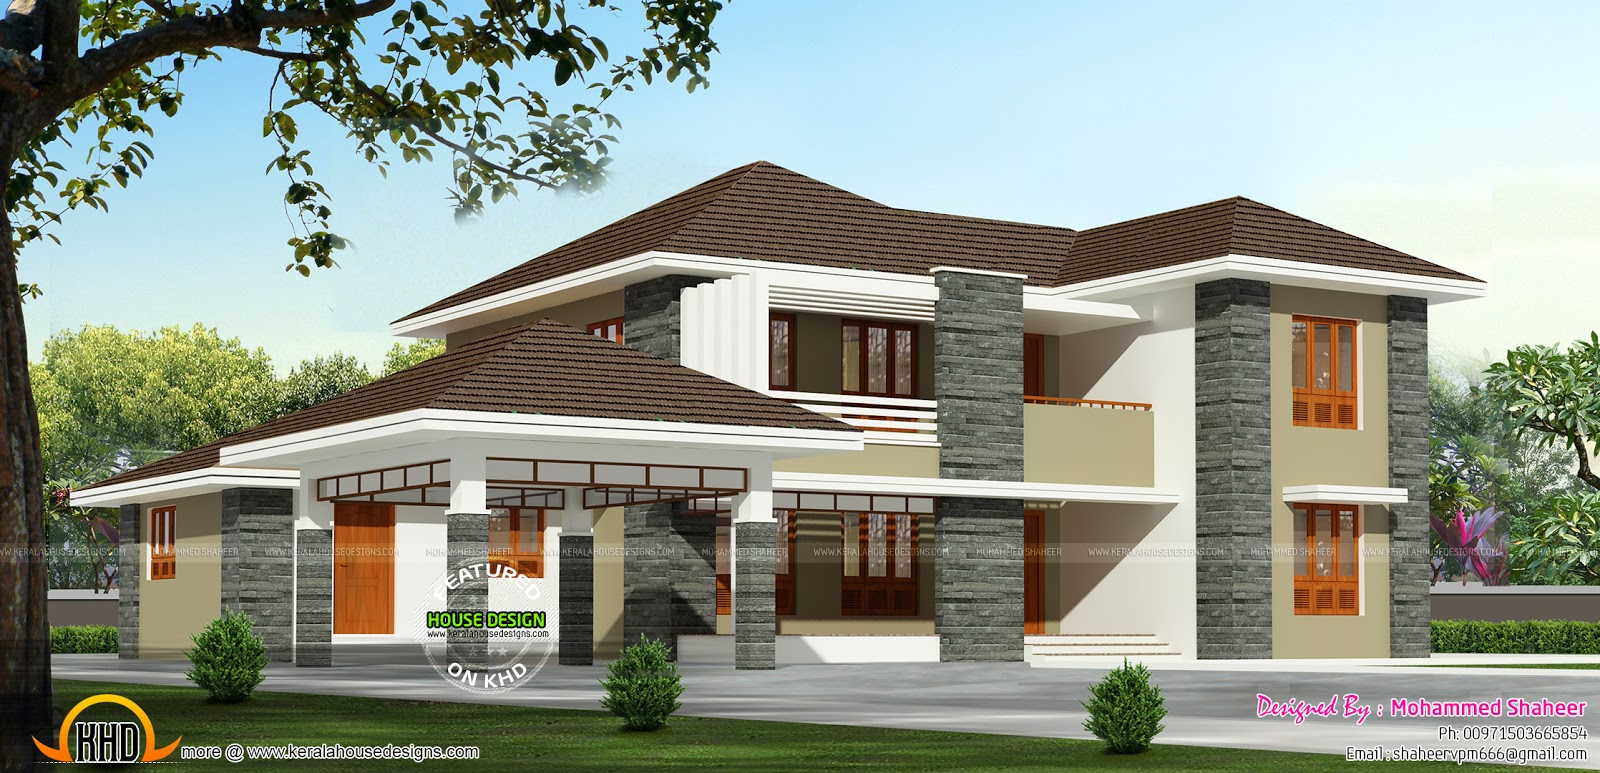 2000 square foot house kerala home design and floor plans for 2000 square foot home plans